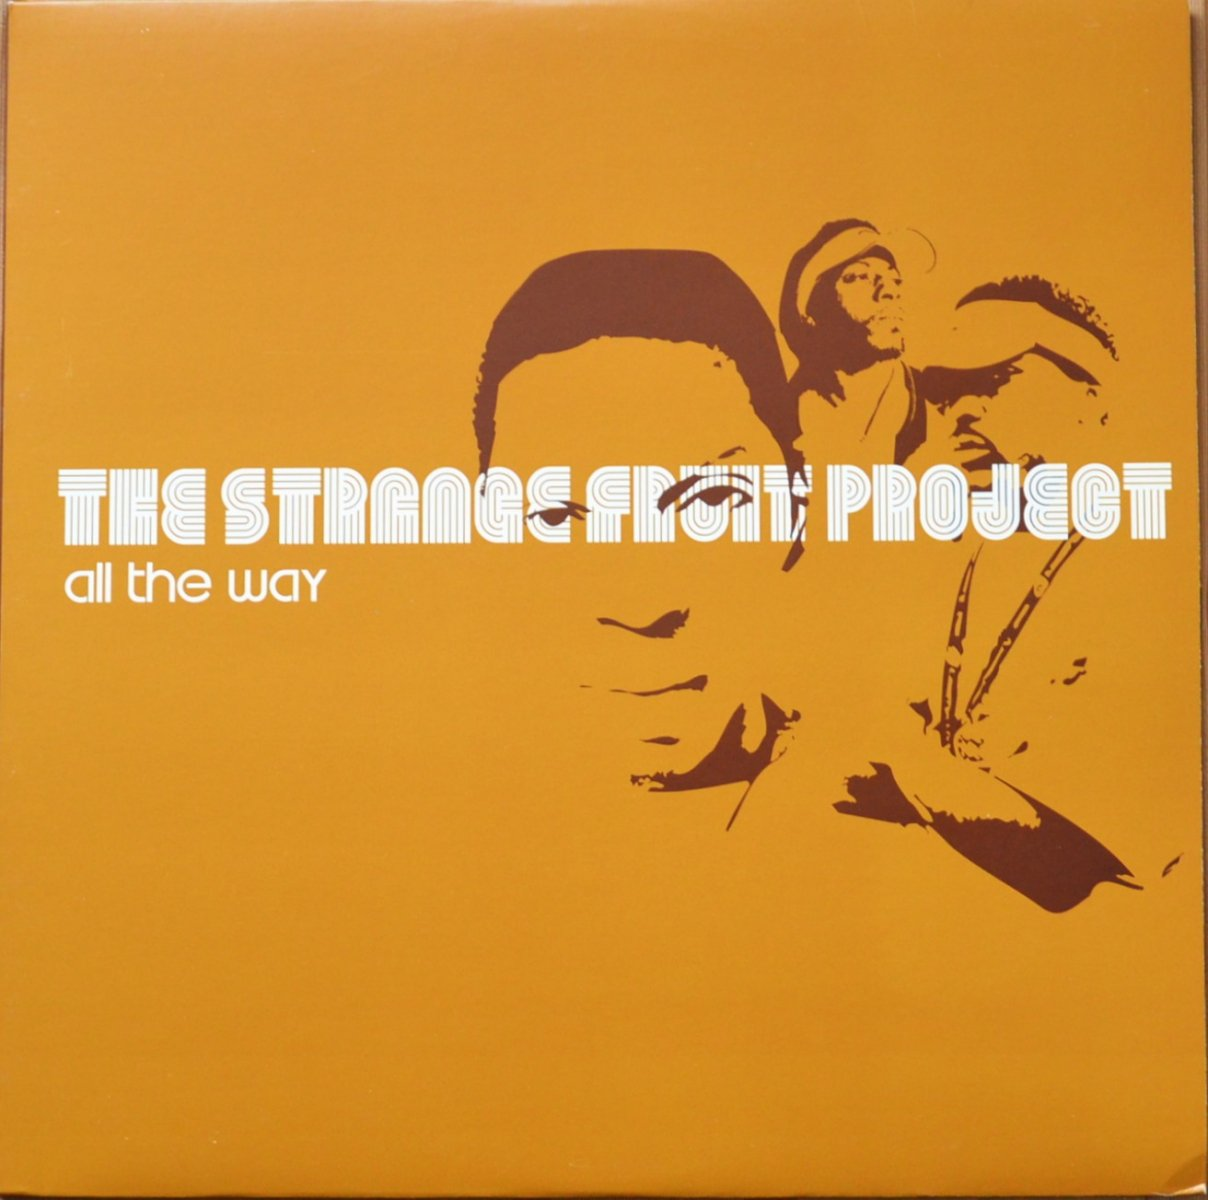 STRANGE FRUIT PROJECT ‎/ ALL THE WAY / MAINTAIN (12